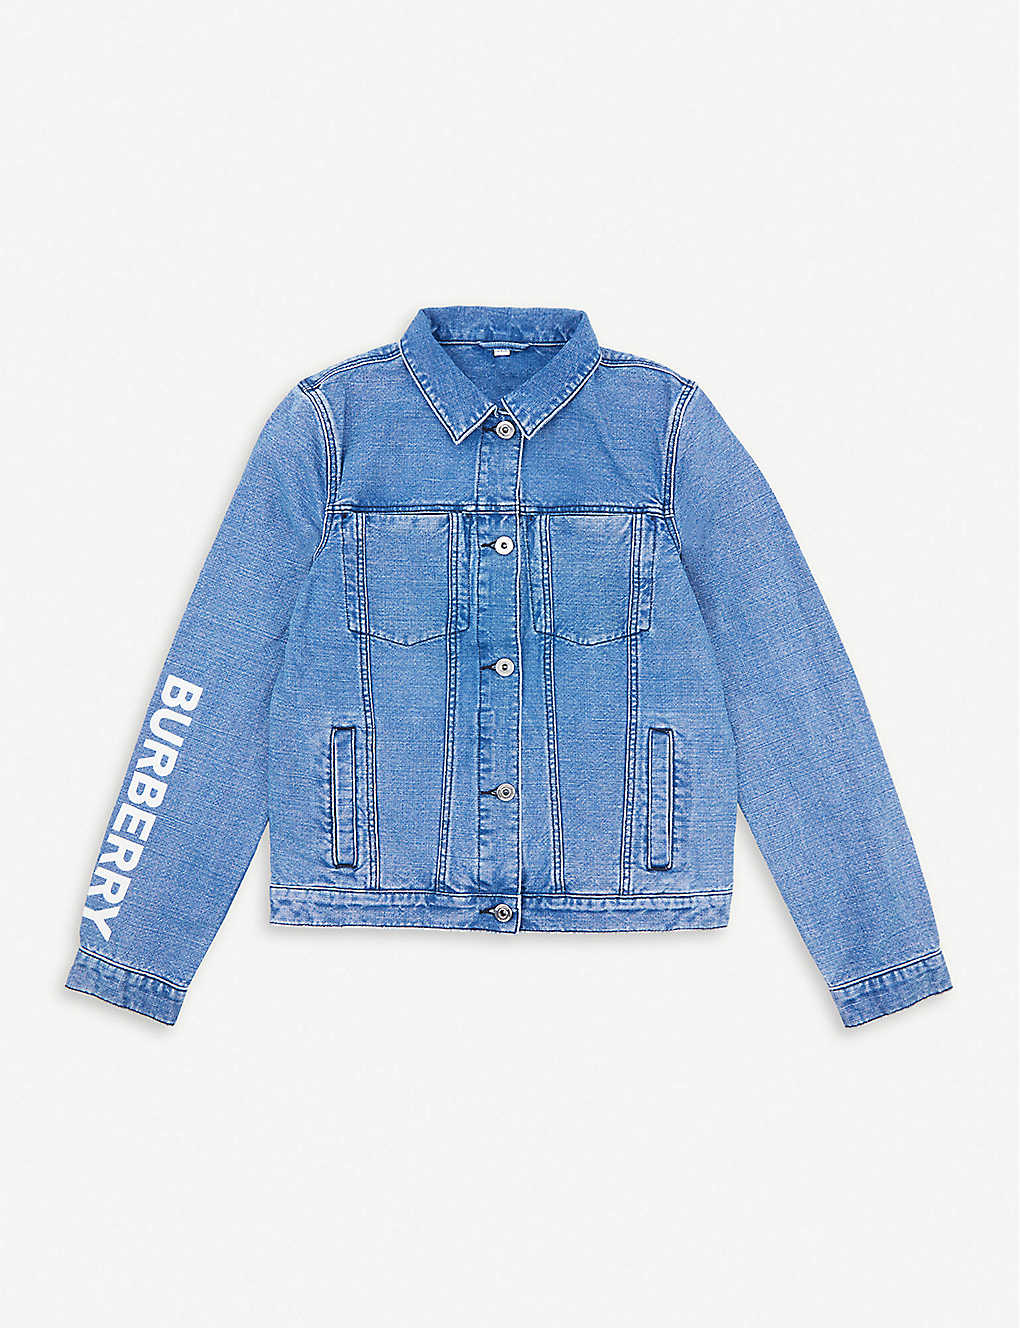 BURBERRY: Branded denim jacket 4-14 years